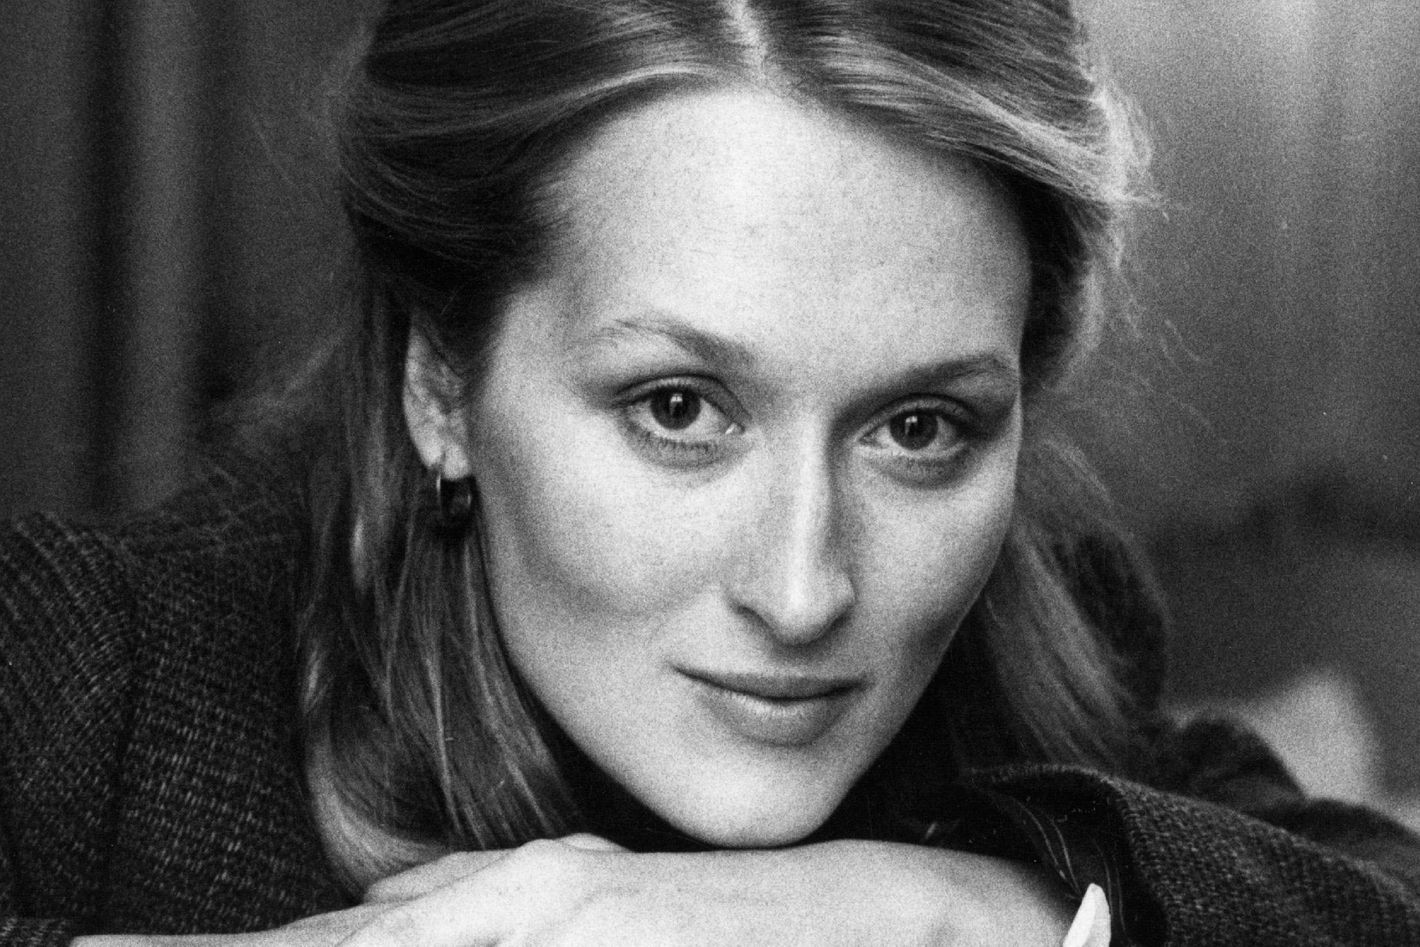 Photo of Alumni of IVY League colleges- Meryl Streep